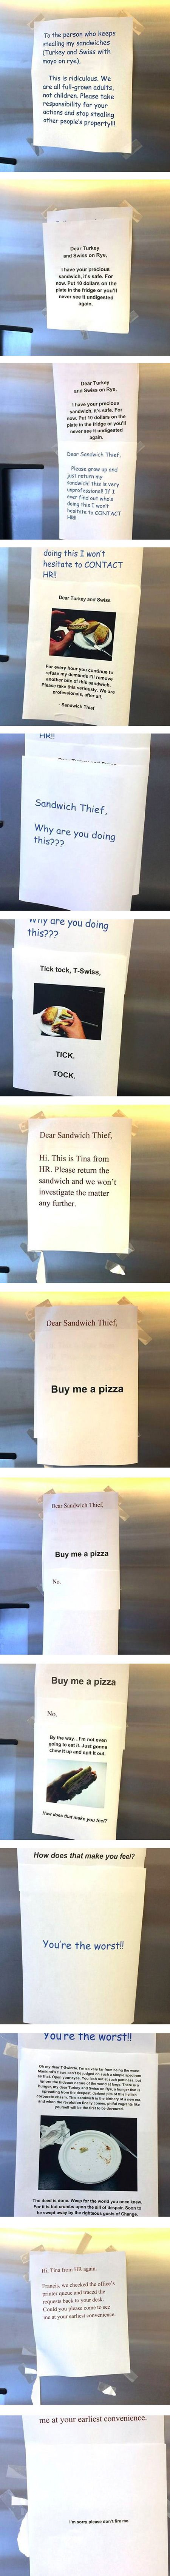 Pranking someone at work is one thing, this guy took things too far.